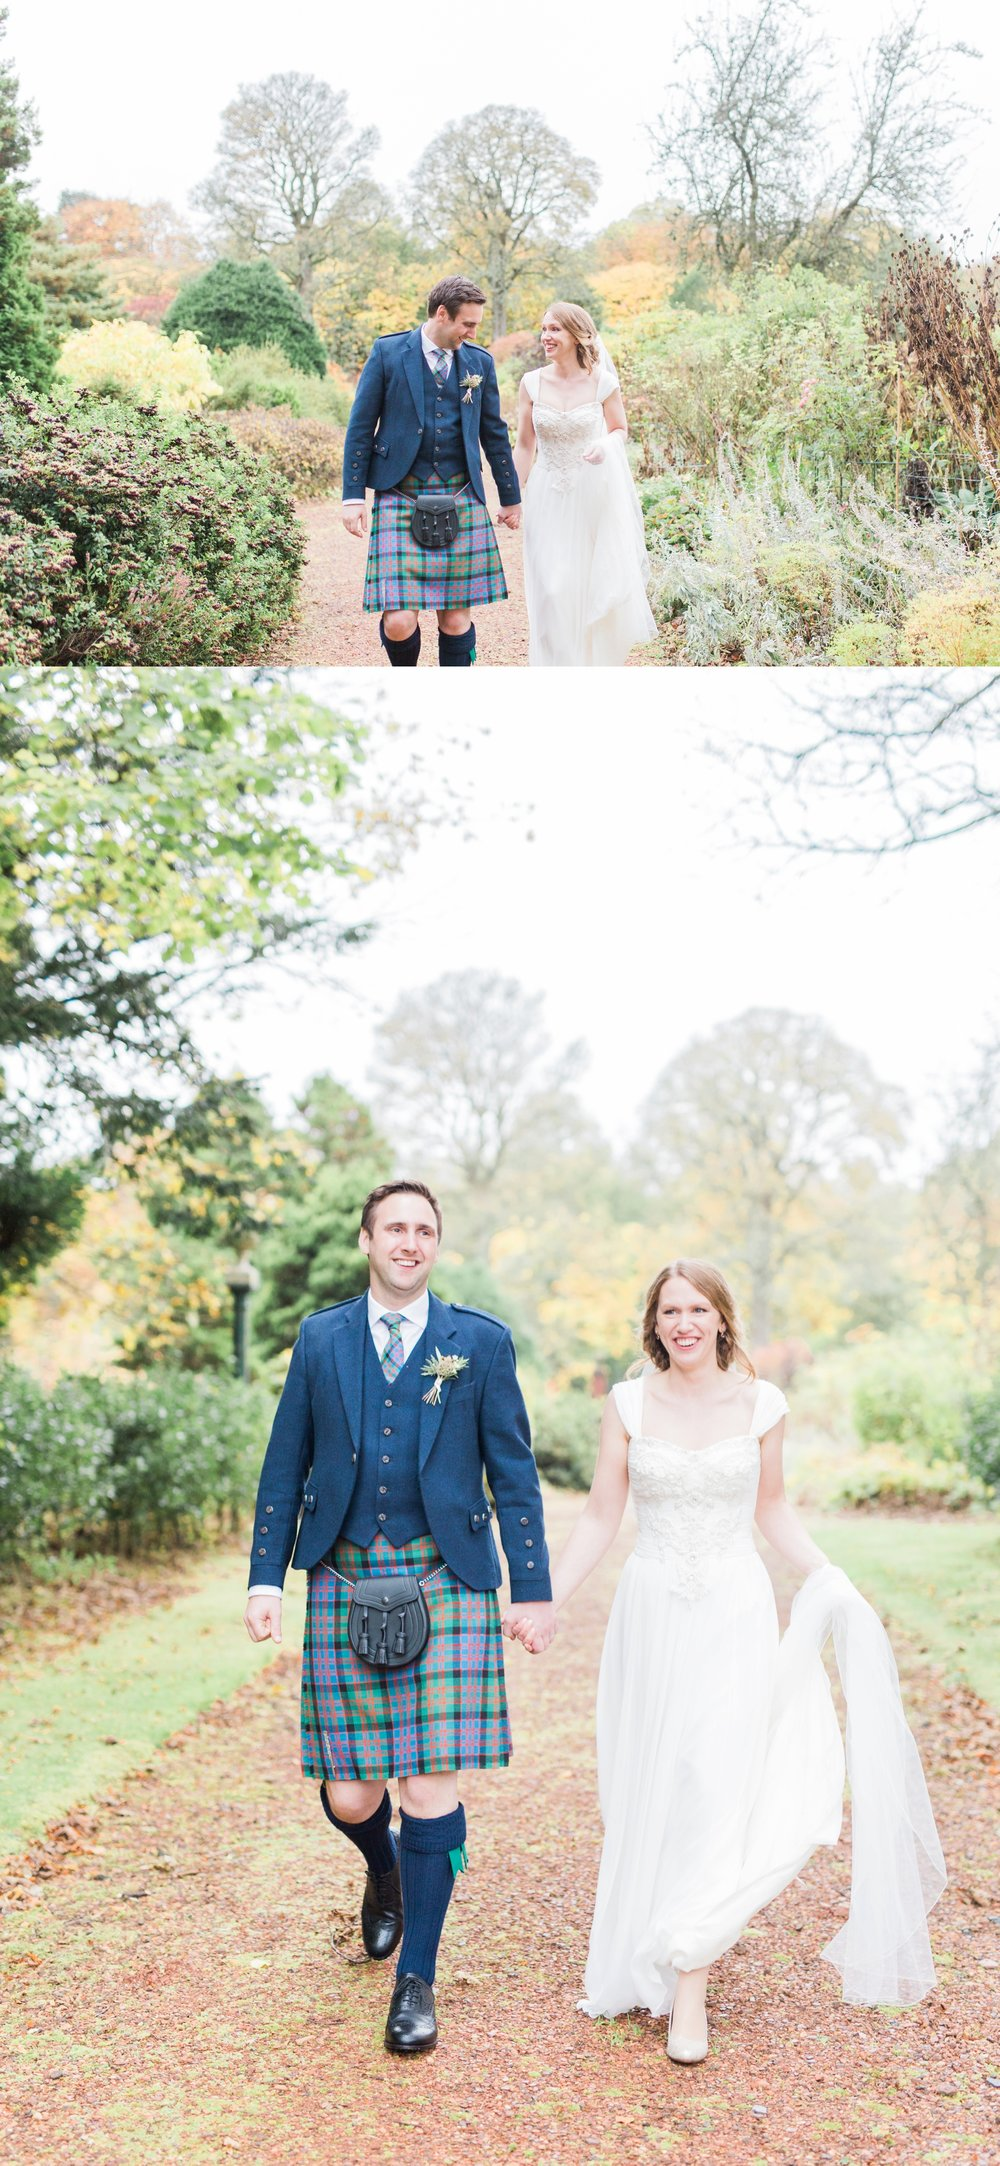 Suzanne_li_photography_kirknewton_wedding_0035.jpg